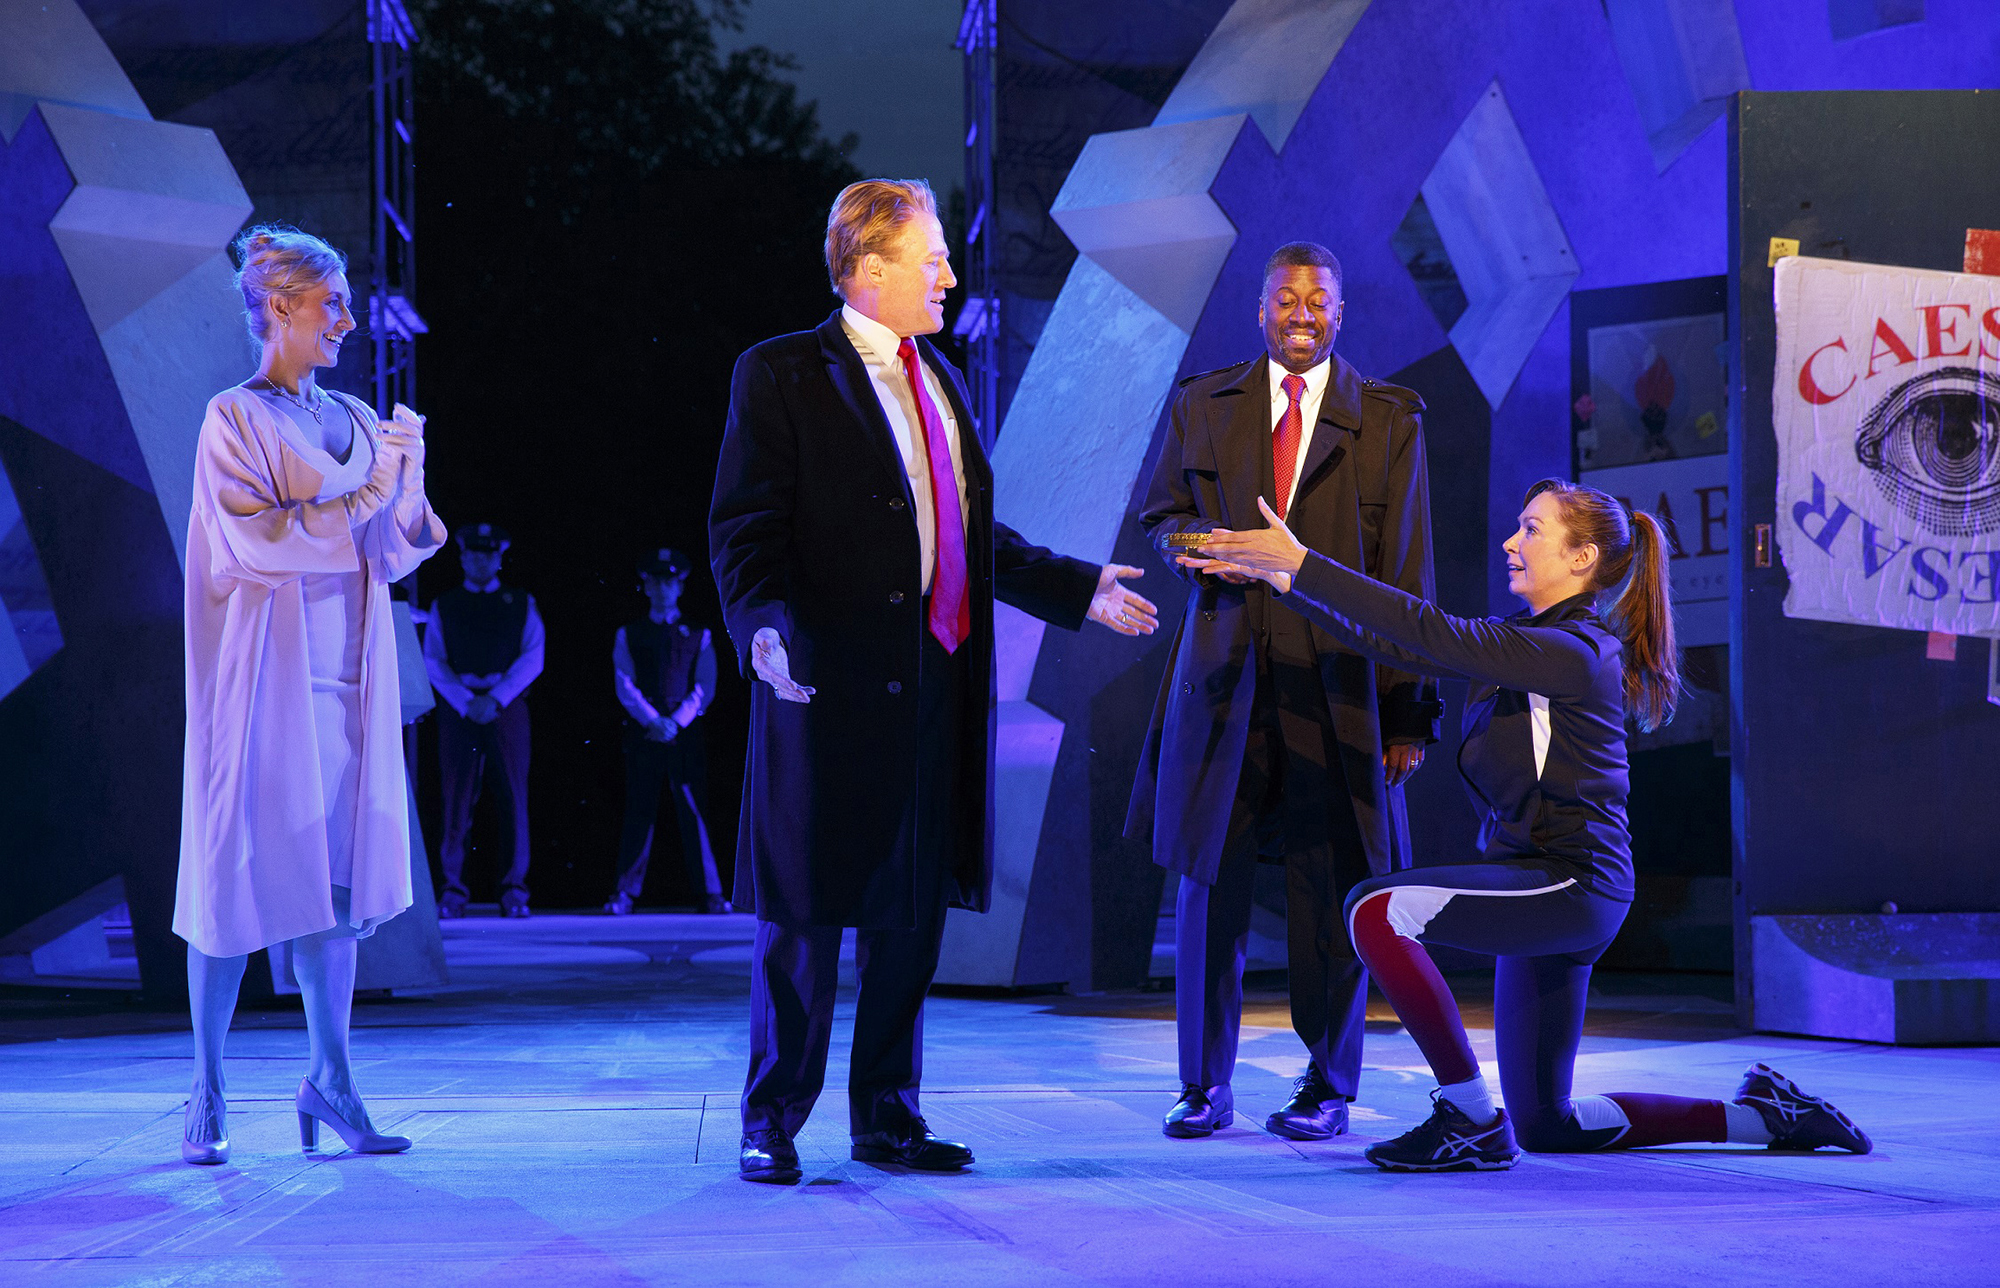 Tina Benko, left, portrays Melania Trump in the role of Caesar's wife, Calpurnia, and Gregg Henry, center left, portrays President Donald Trump in the role of Julius Caesar during a dress rehearsal of The Public Theater's Free Shakespeare in the Park production of Julius Caesar in New York City, on May 21, 2017.